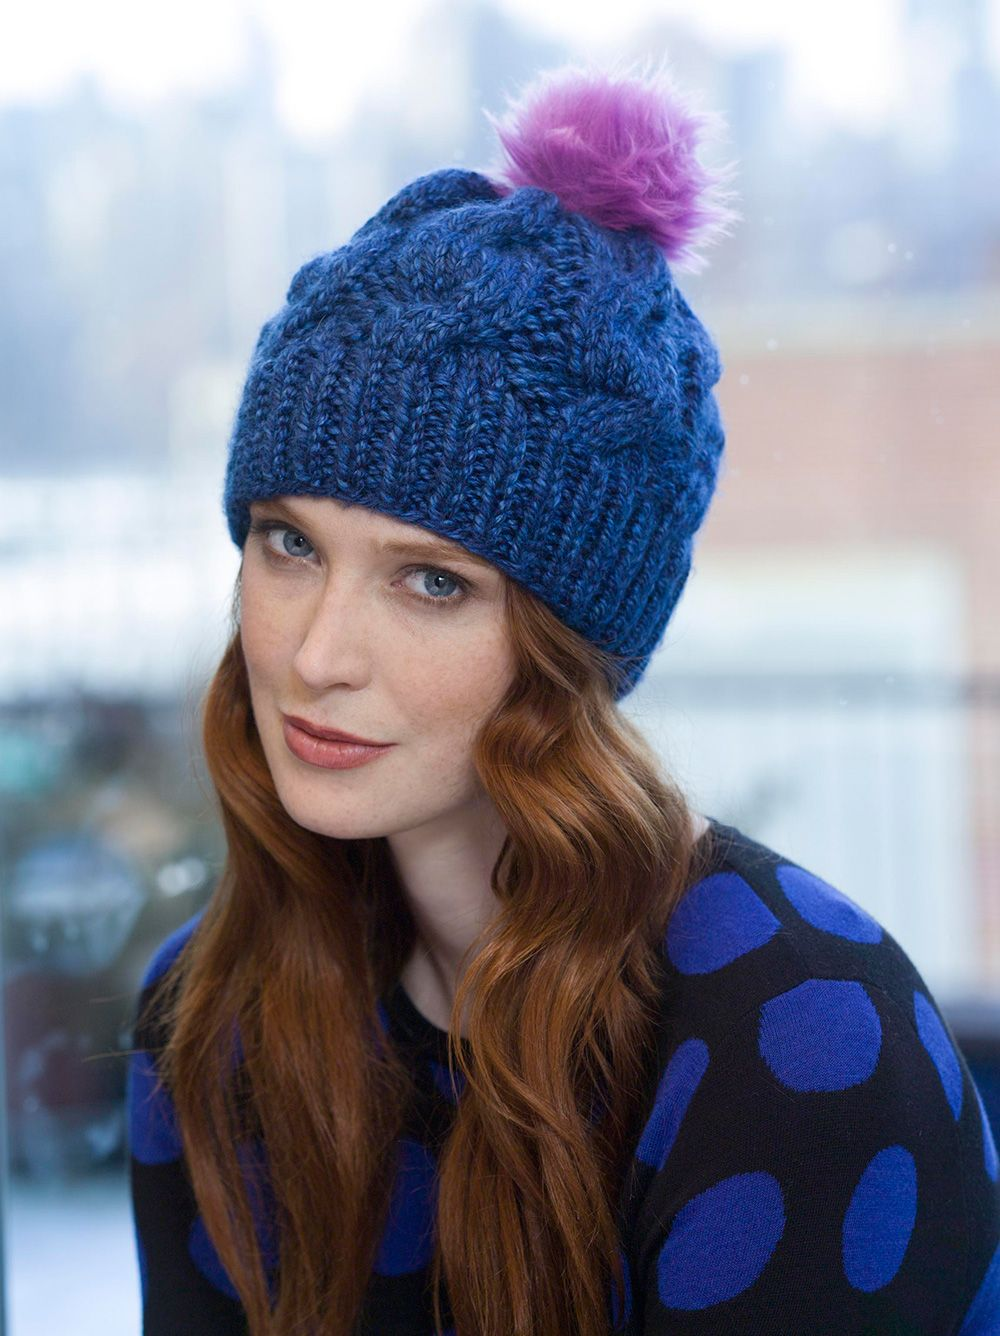 Free Knitting Pattern: Chunky Cabled Hat | Knitting | Pinterest ...